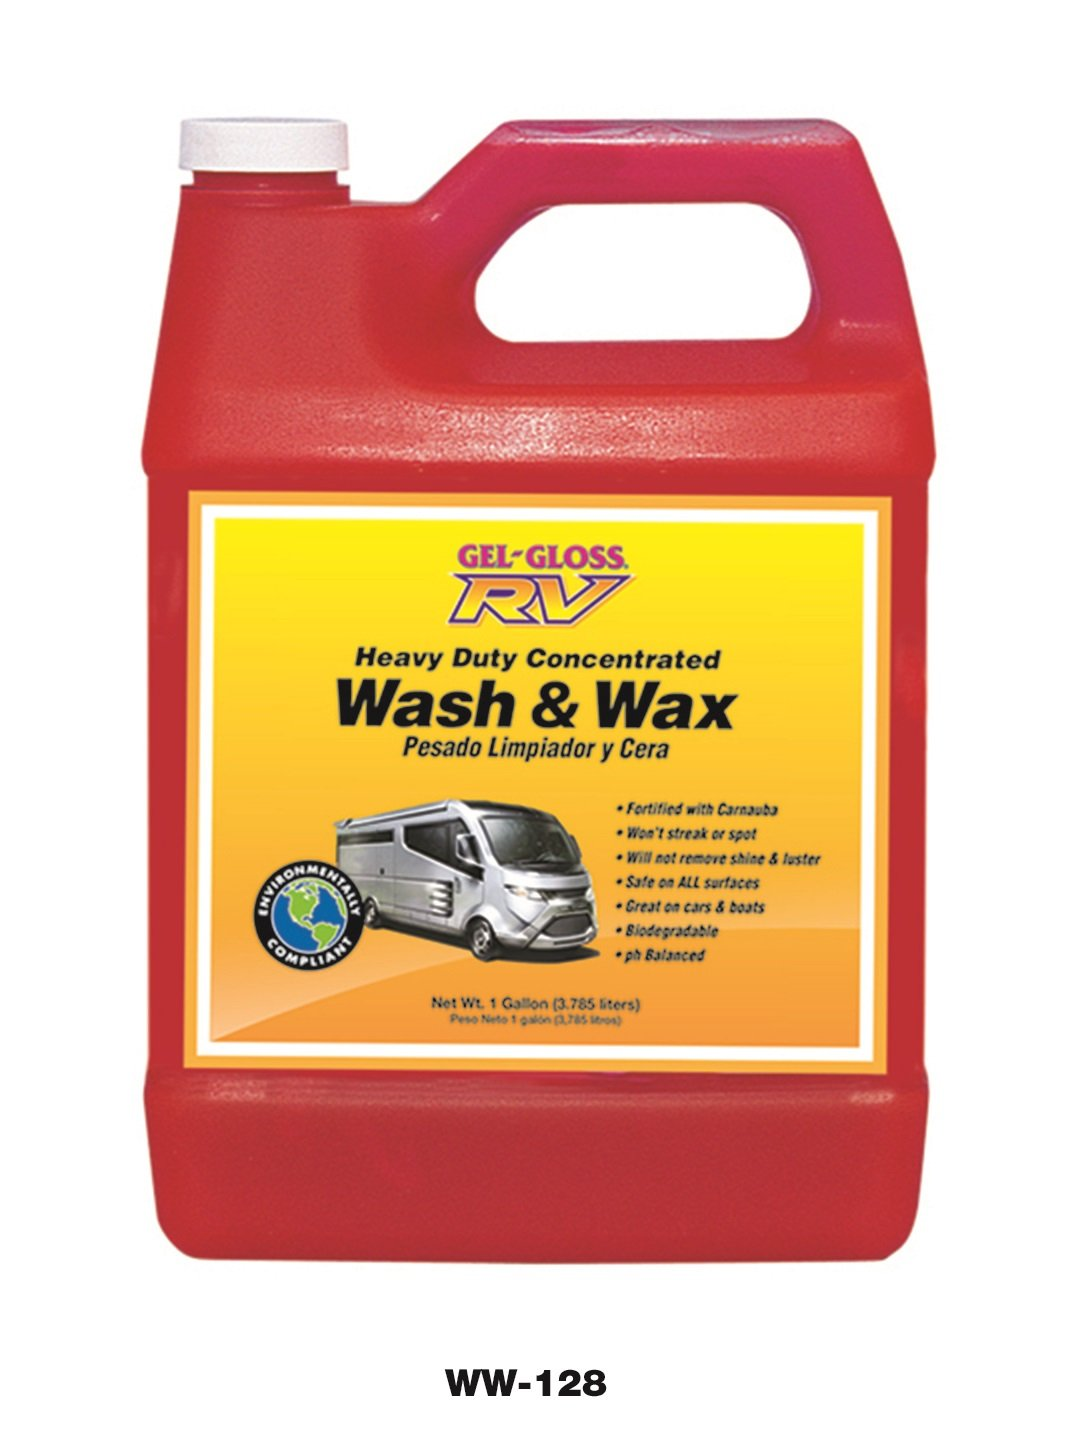 Gel-Gloss RV Wash & Wax